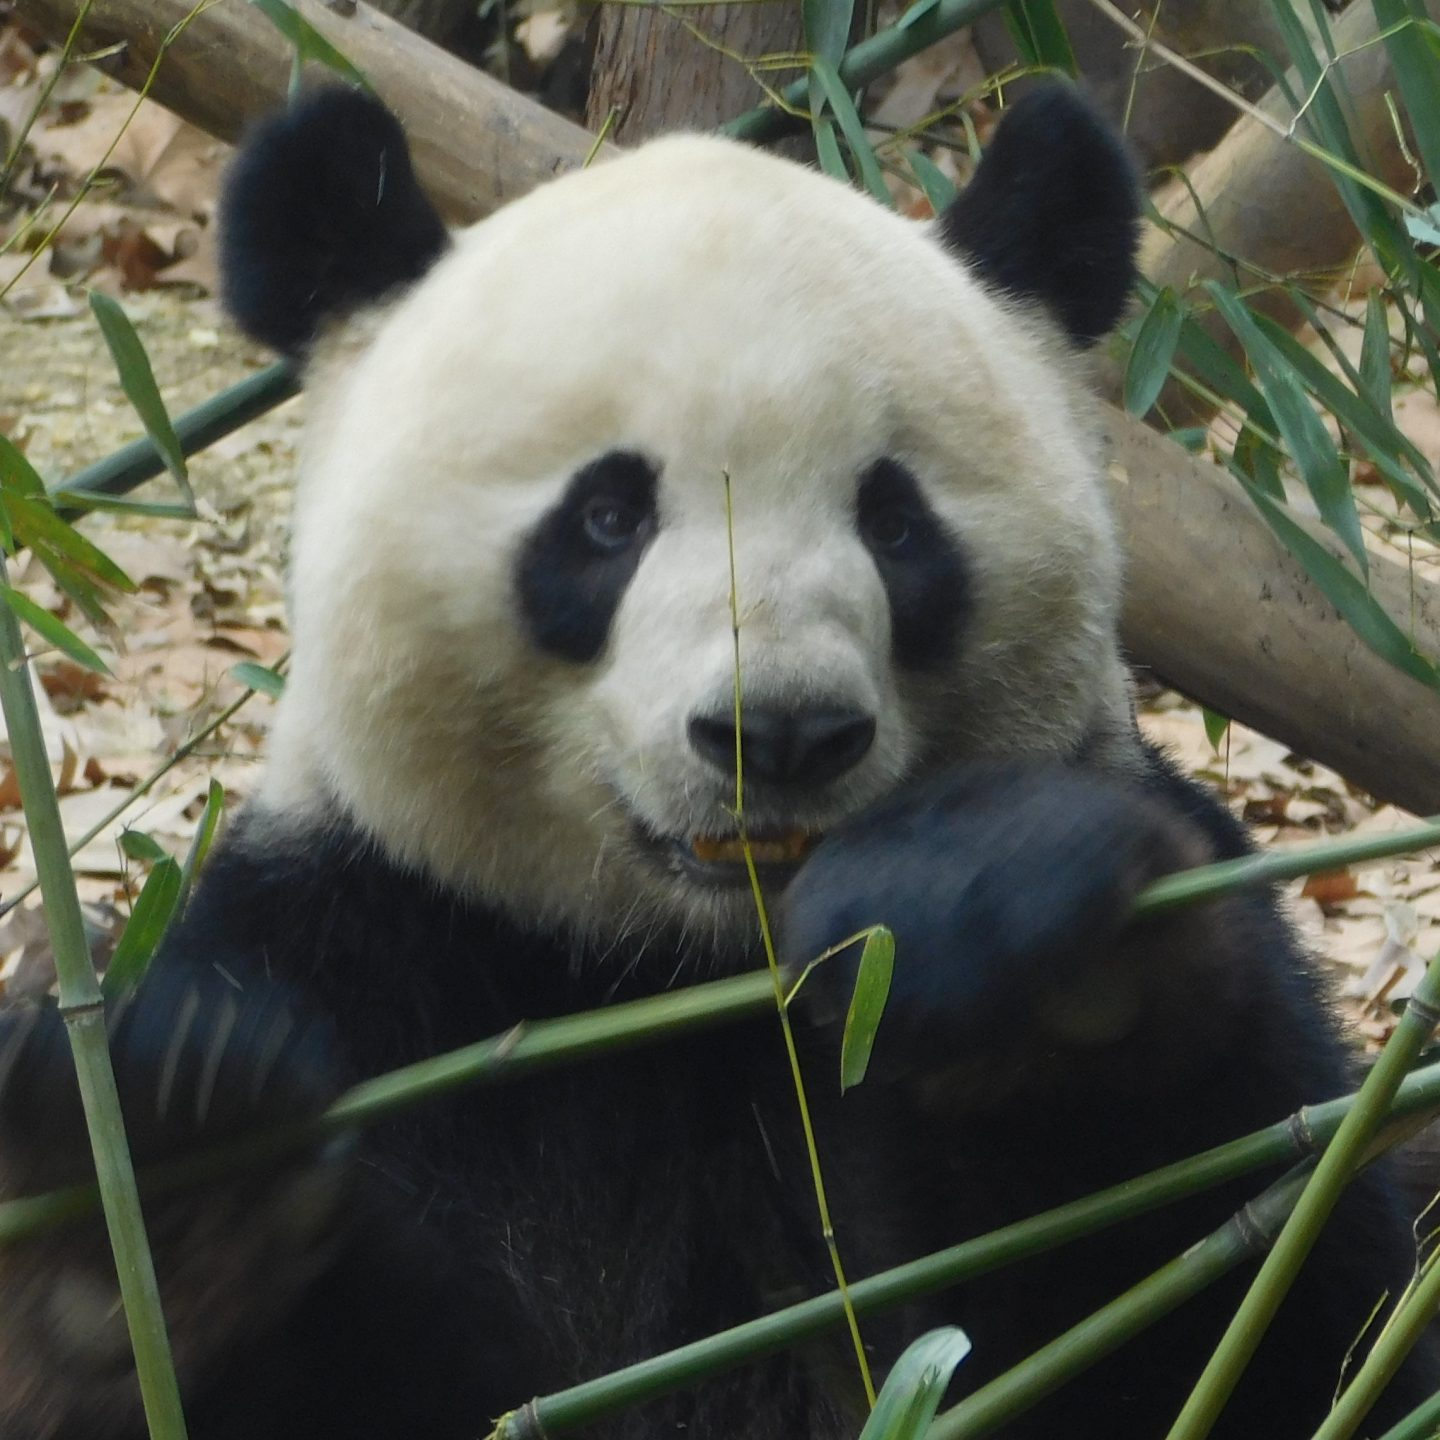 A Day with the Giant Panda!